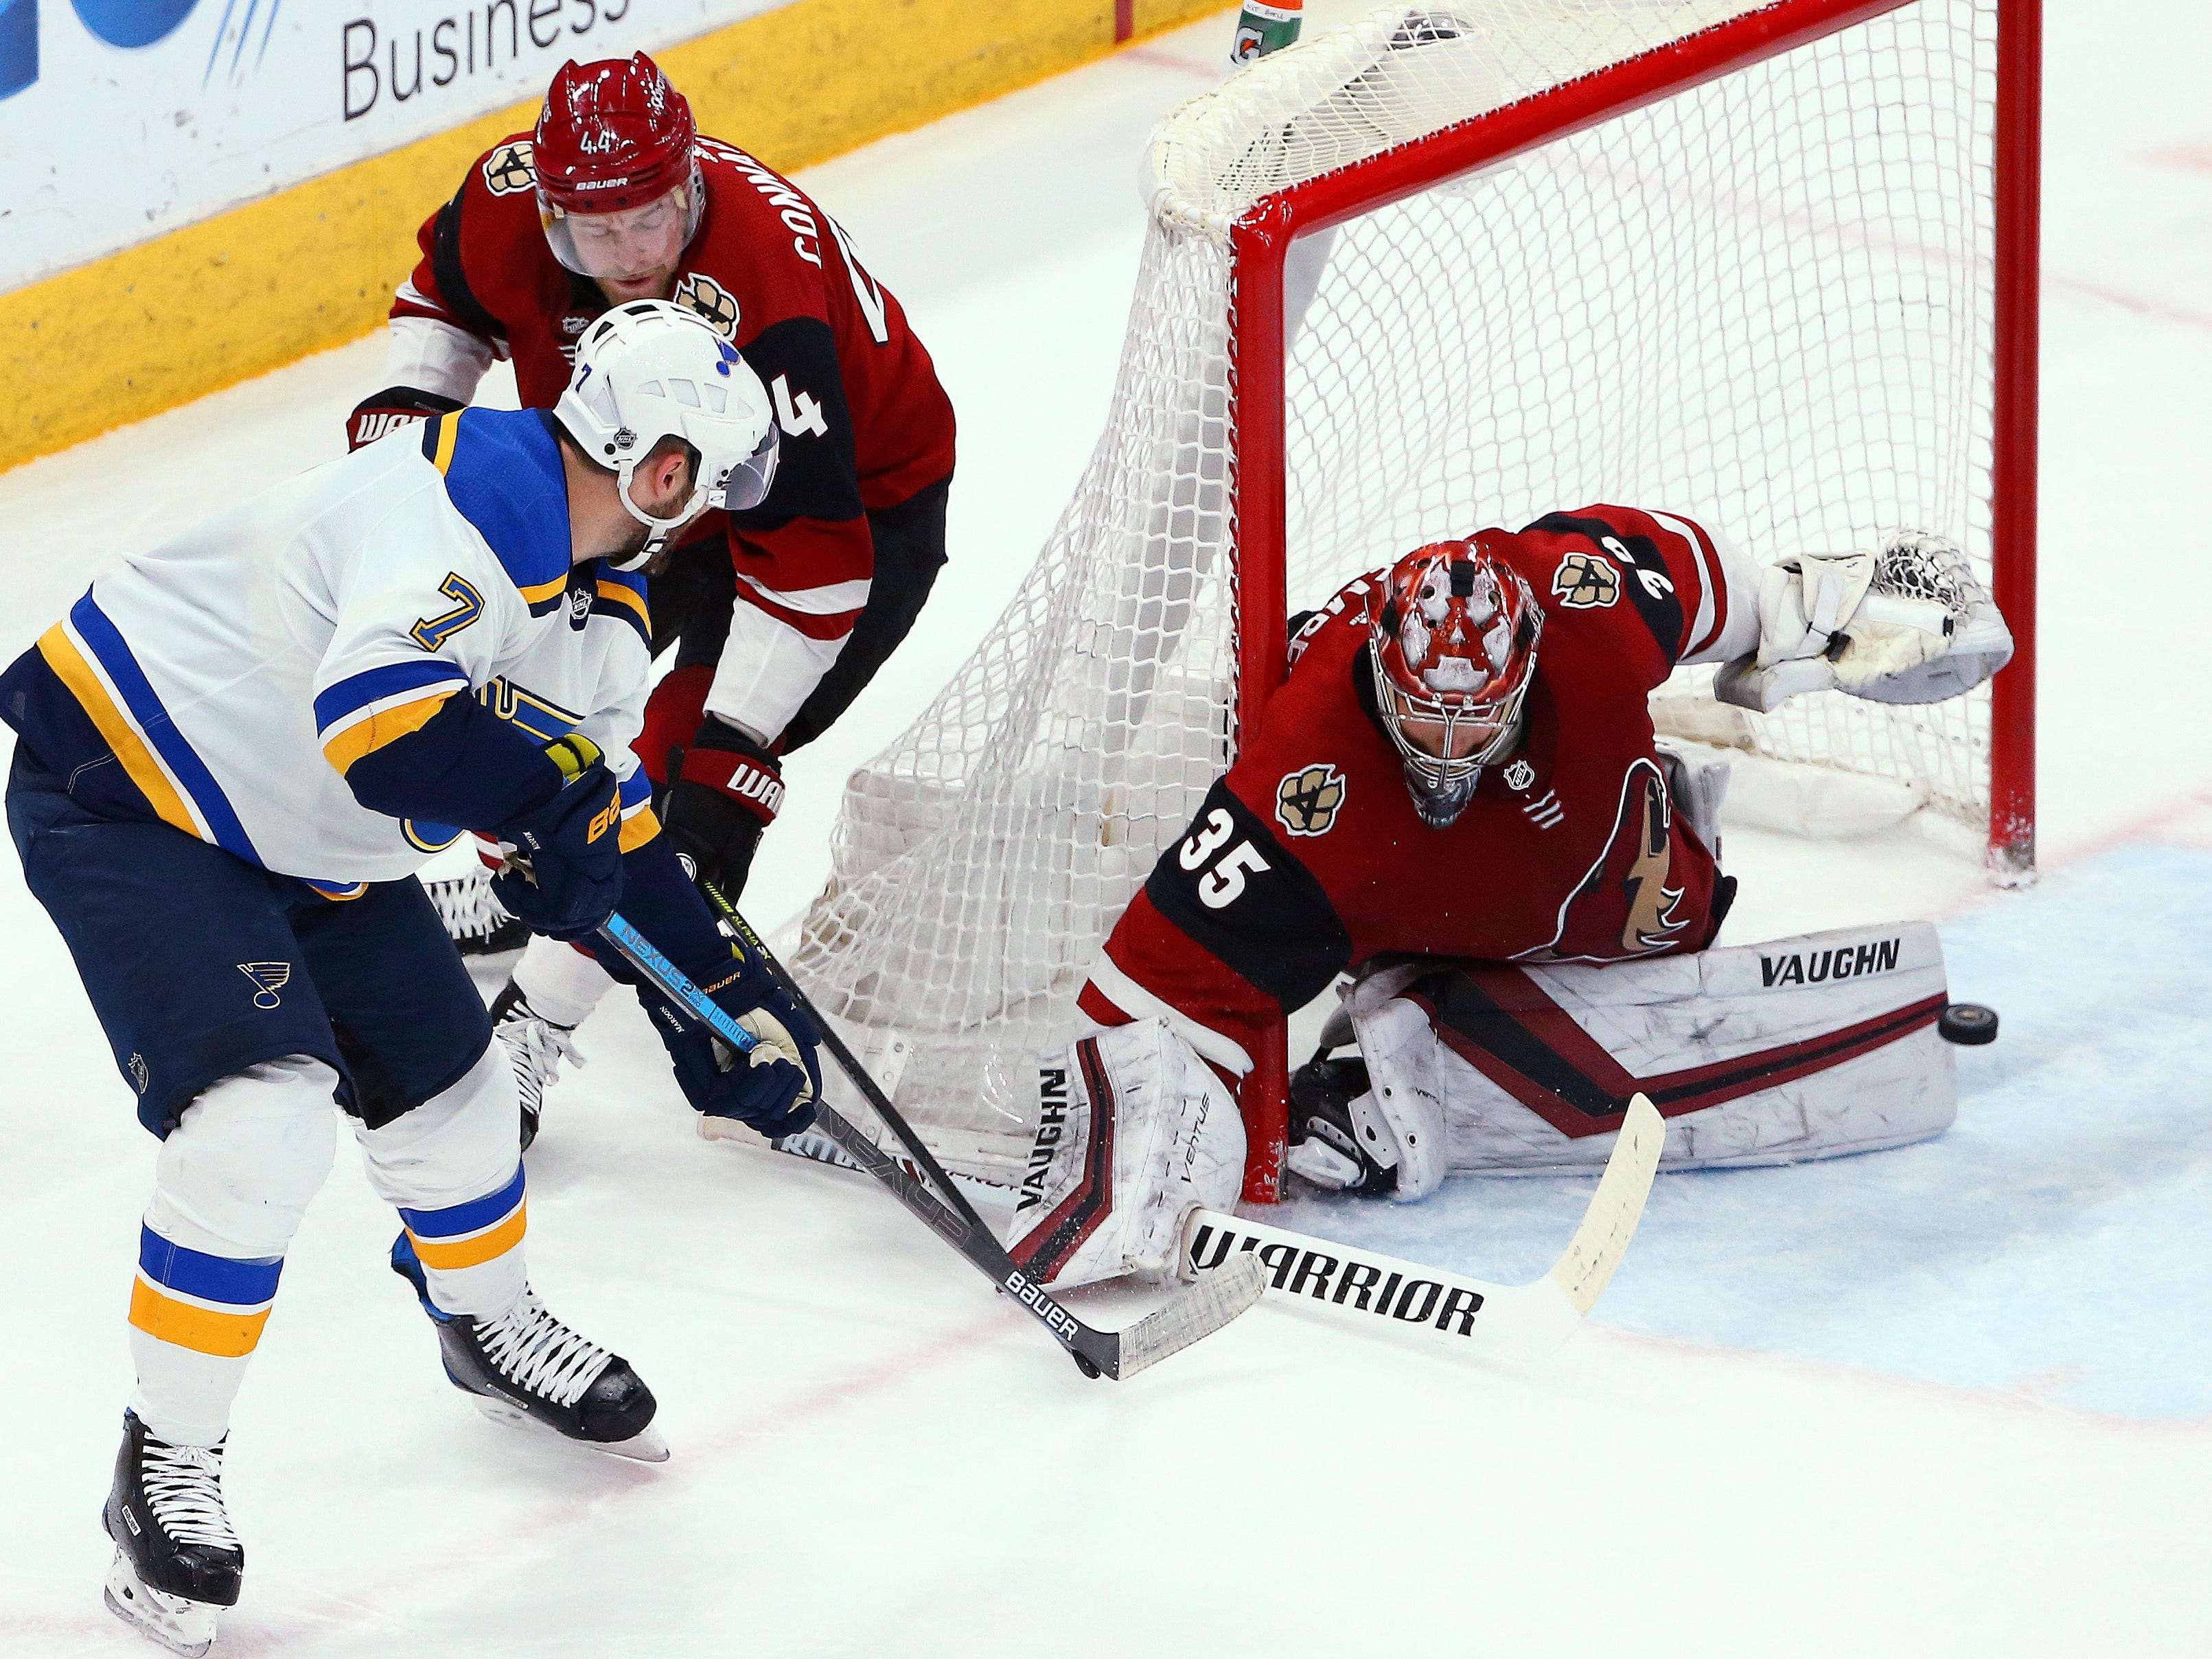 Arizona Coyotes goaltender Darcy Kuemper (35) makes a save on a shot by St. Louis Blues left wing Pat Maroon (7) as Coyotes defenseman Kevin Connauton (44) applies pressure during the first period of an NHL hockey game Thursday, Feb. 14, 2019, in Glendale, Ariz.